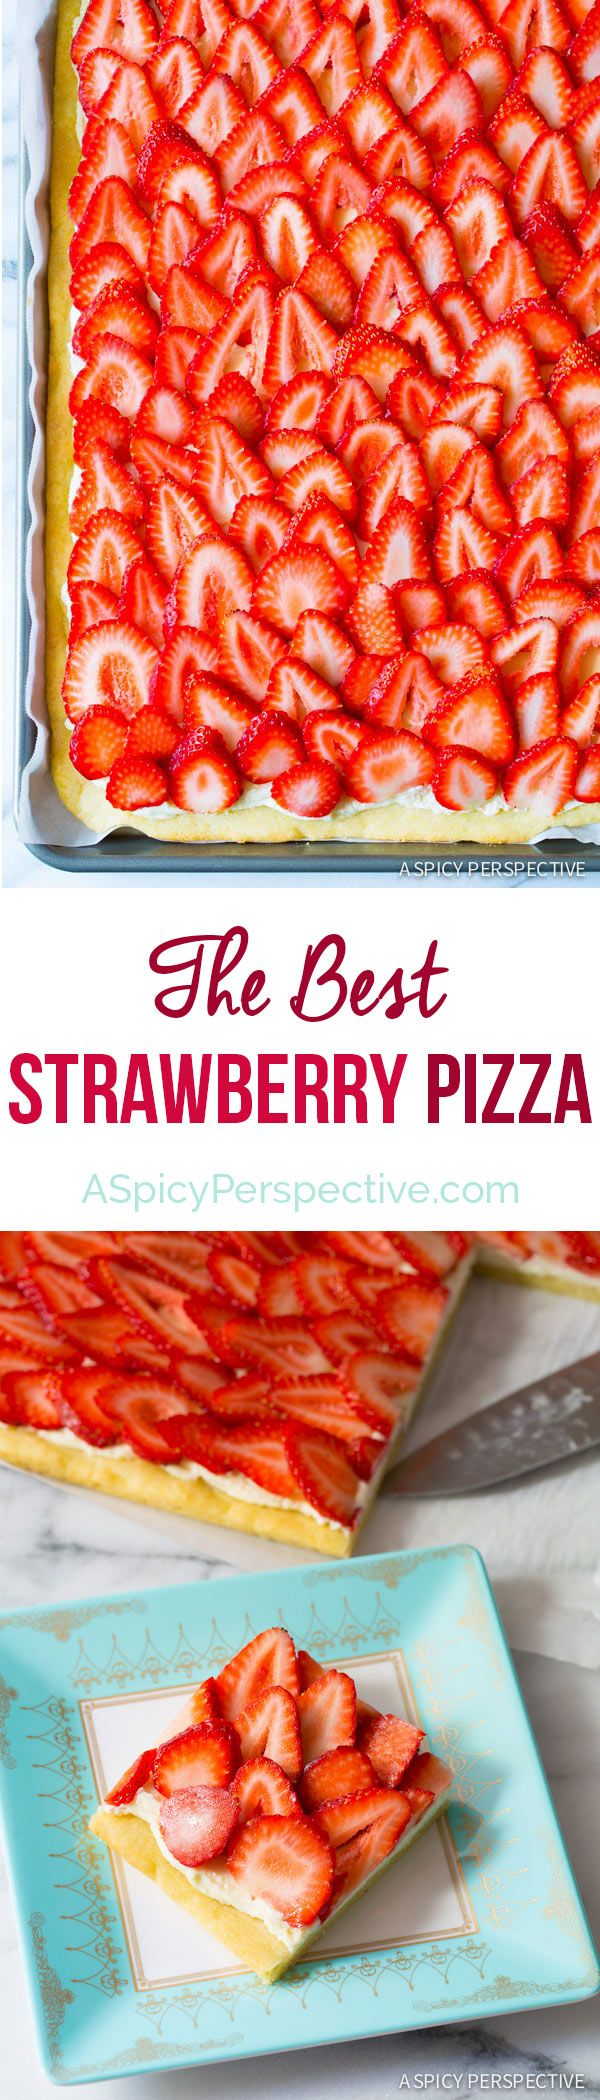 The Absolute BEST Strawberry Pizza - on ASpicyPerspective.com #strawberry #summer